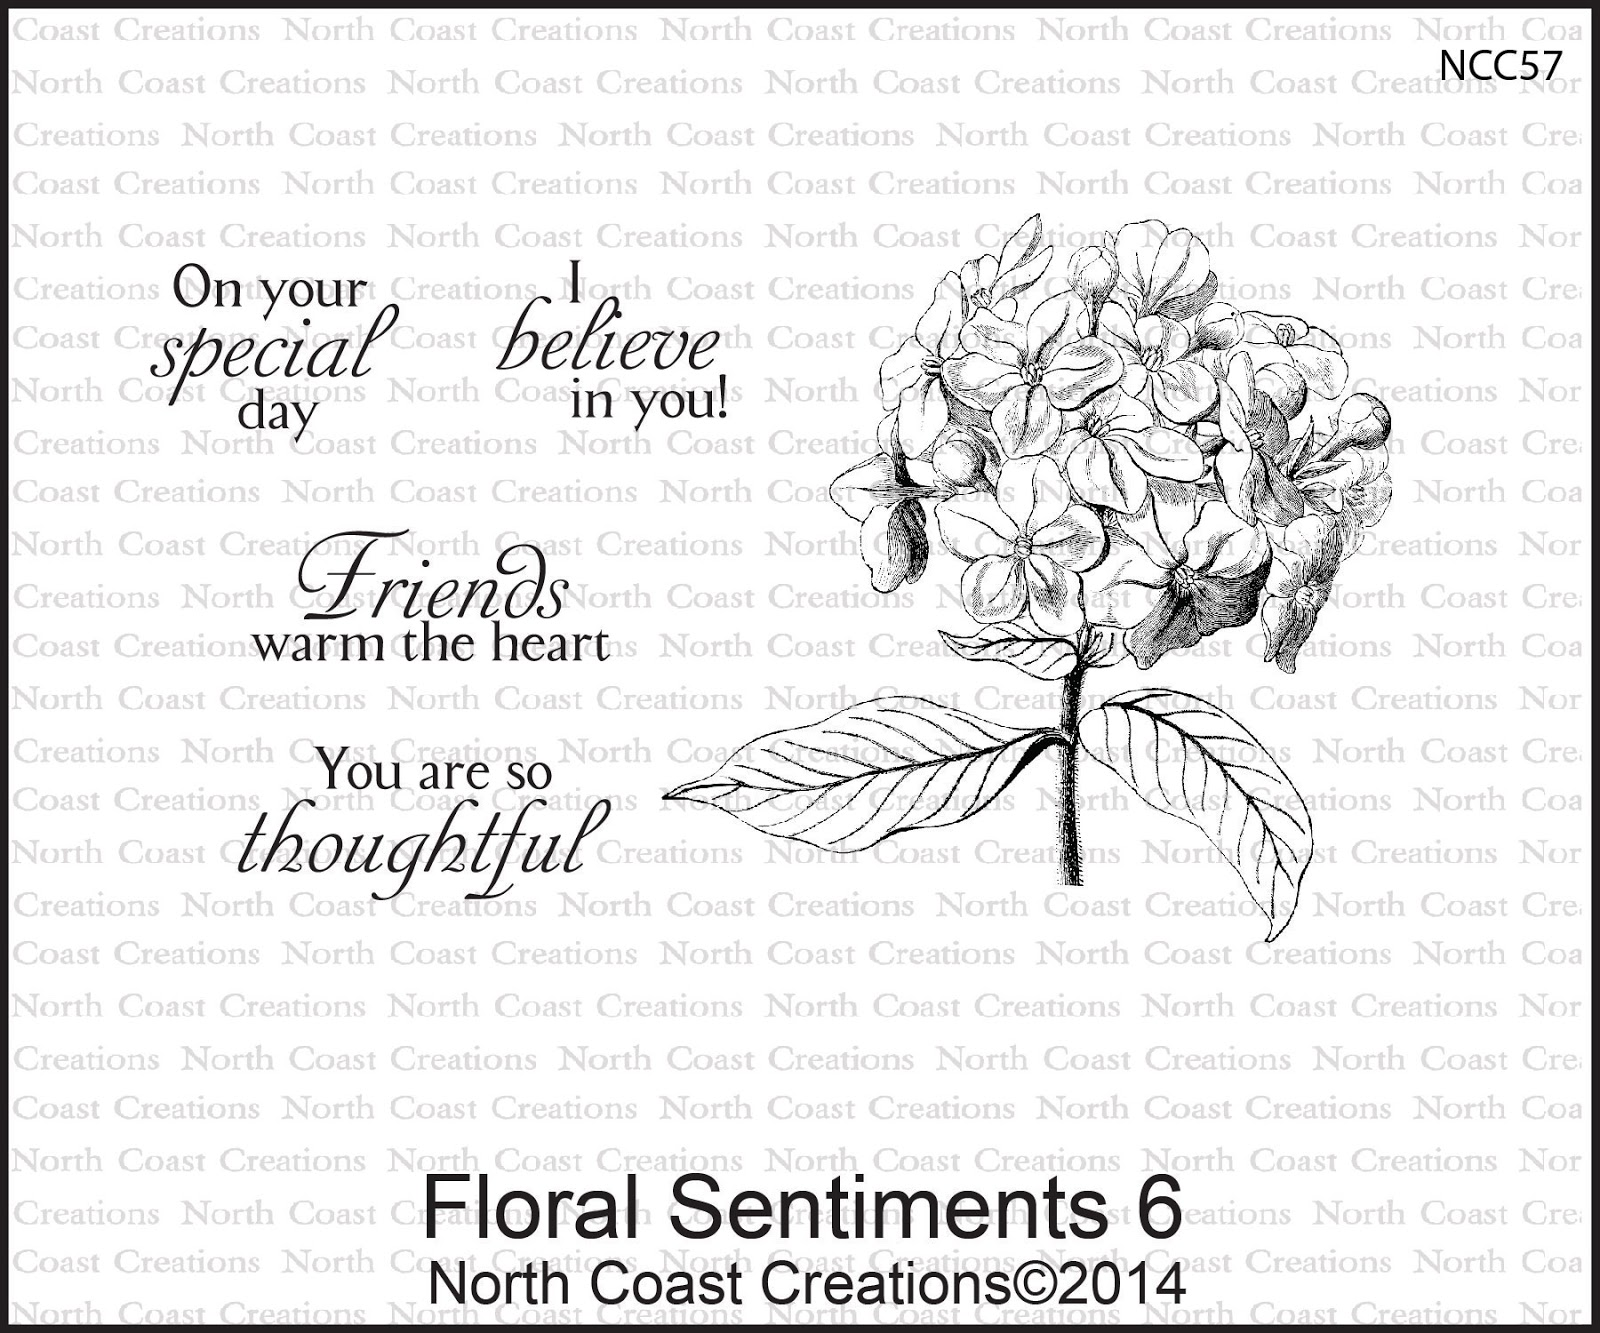 http://www.northcoastcreations.com/index.php/new-releases/ncc58-floral-sentiments-6.html